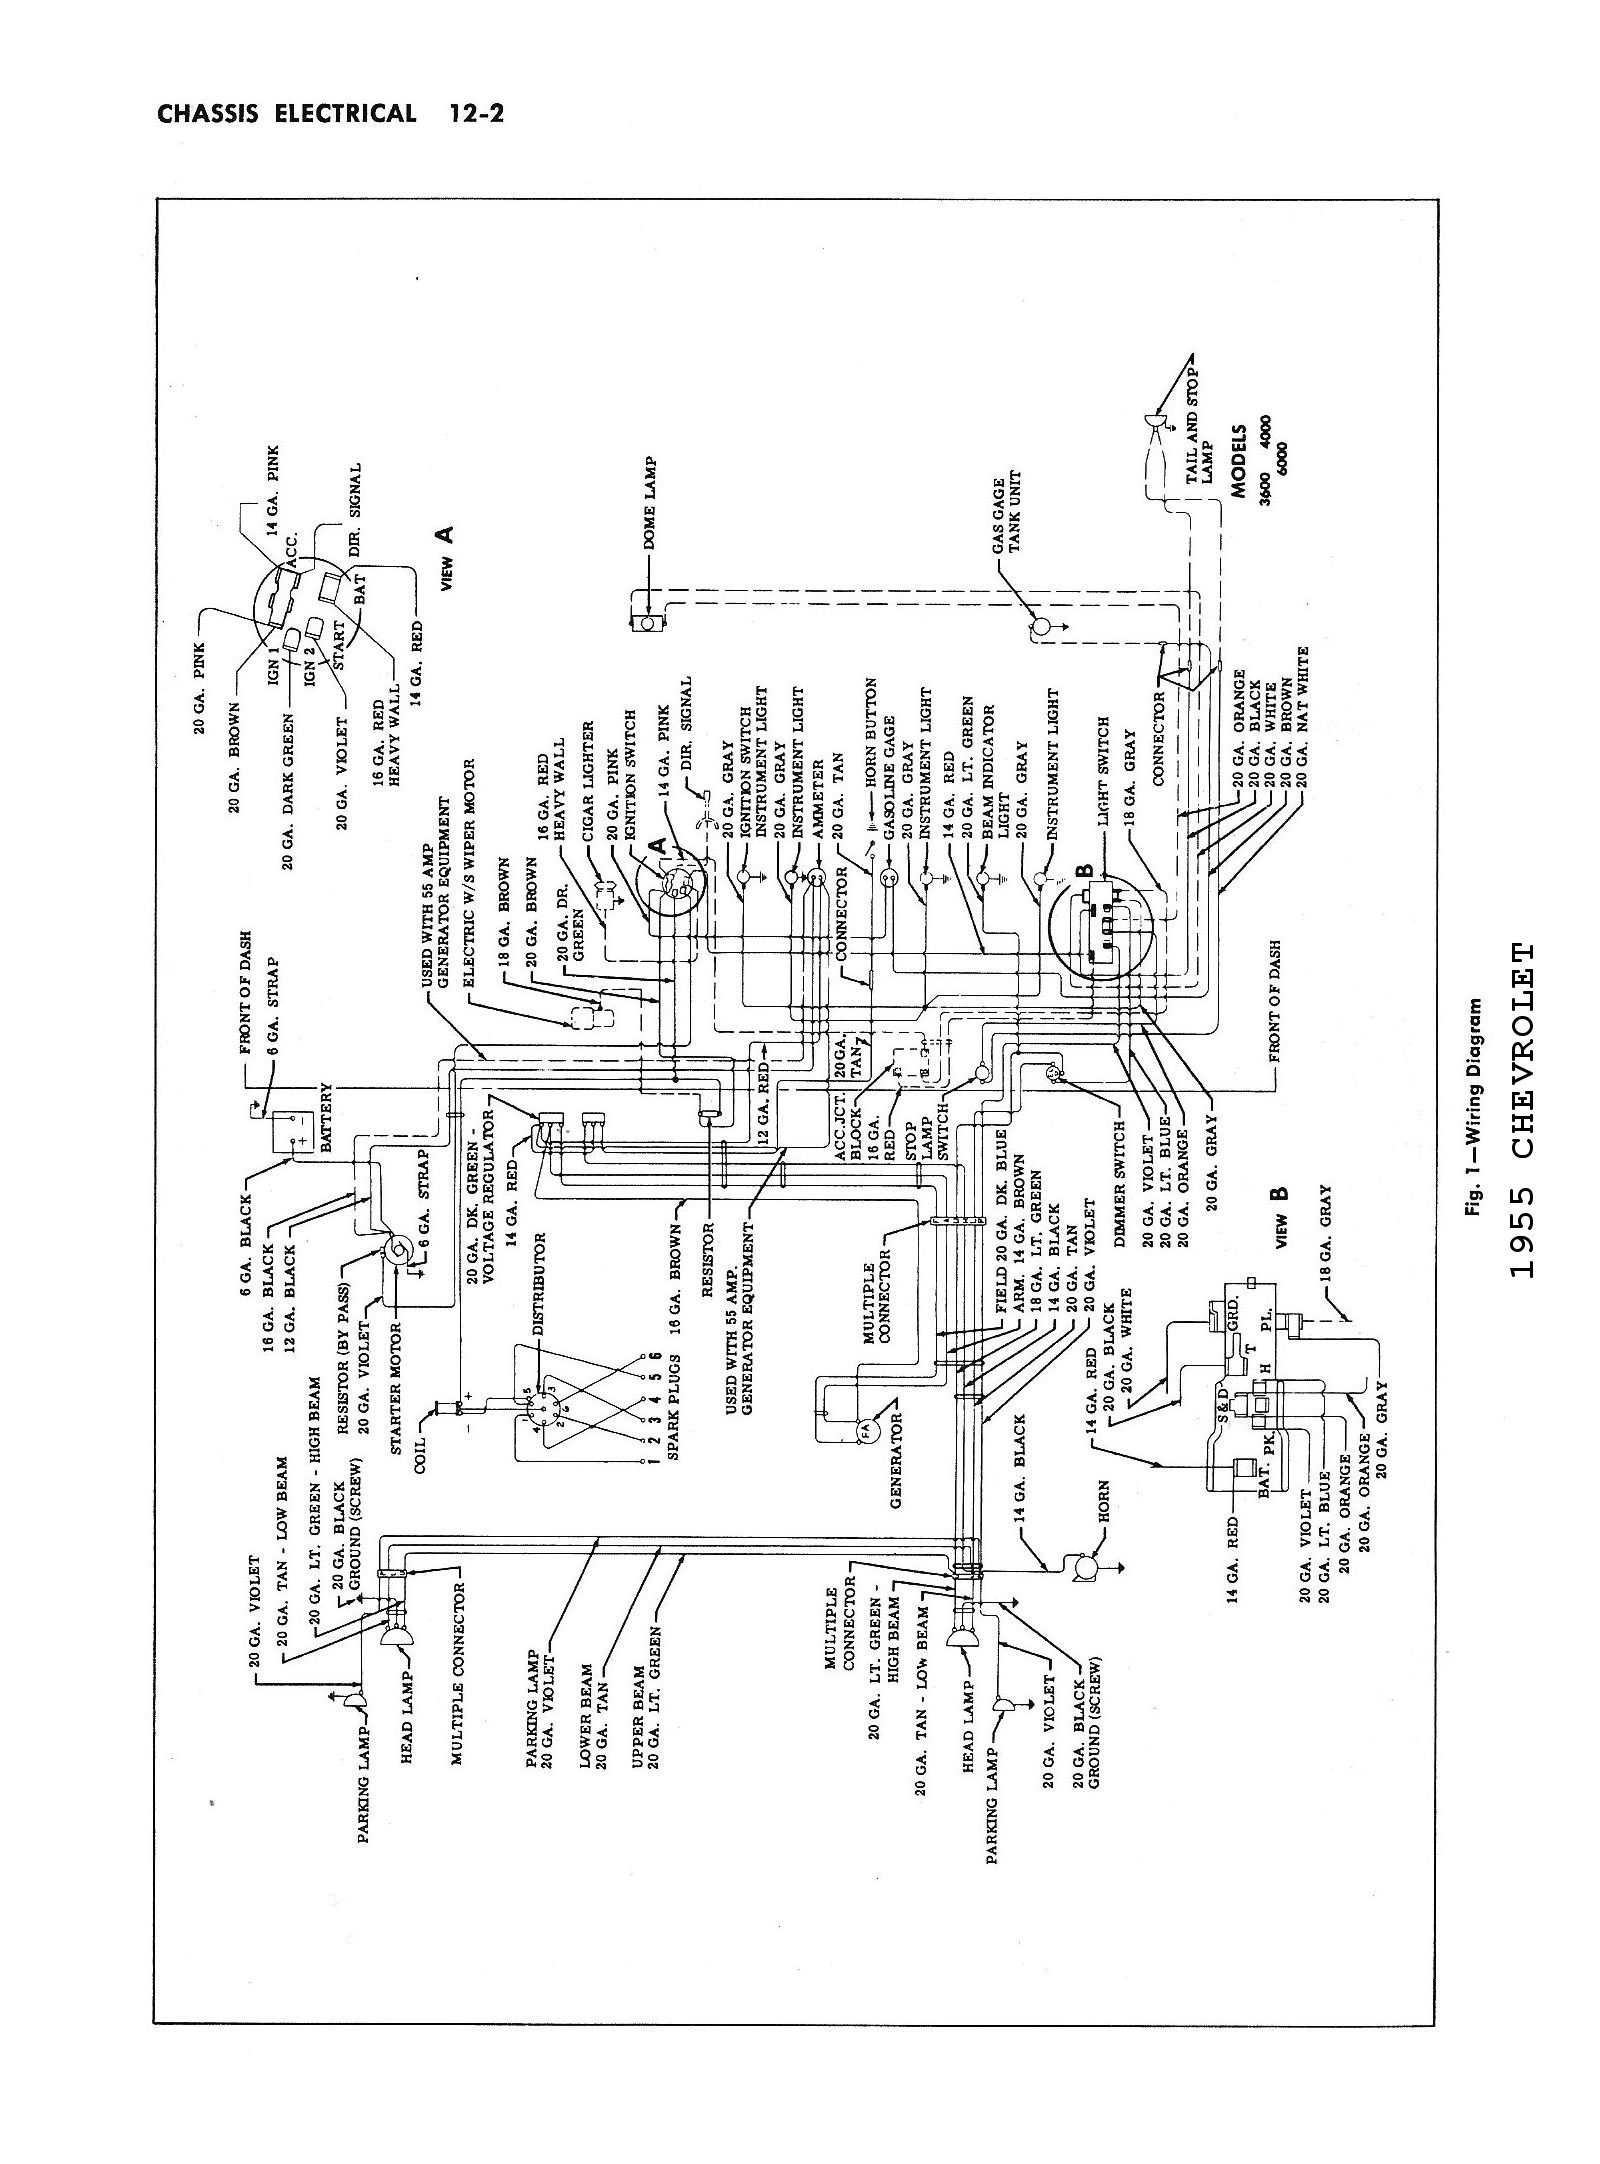 chevy electronic ignition wiring diagram 12v led work light 350 coil